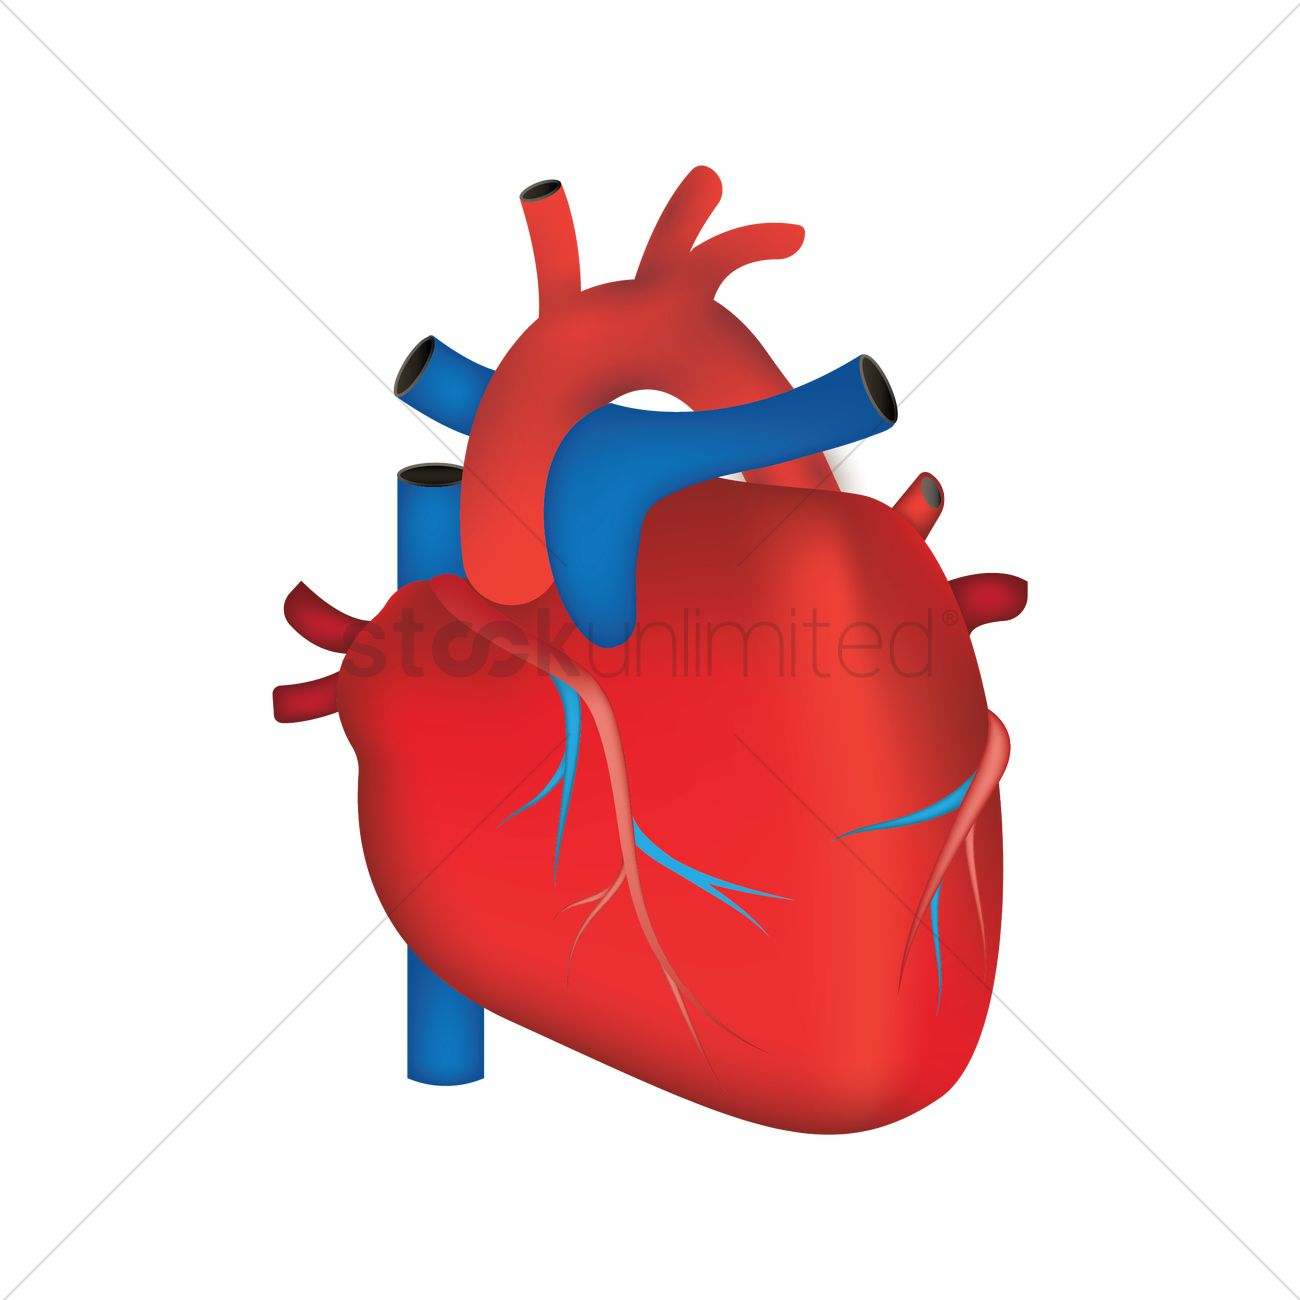 human heart vector image 1866359 stockunlimited rh stockunlimited com human heart vector png human heart vector illustration